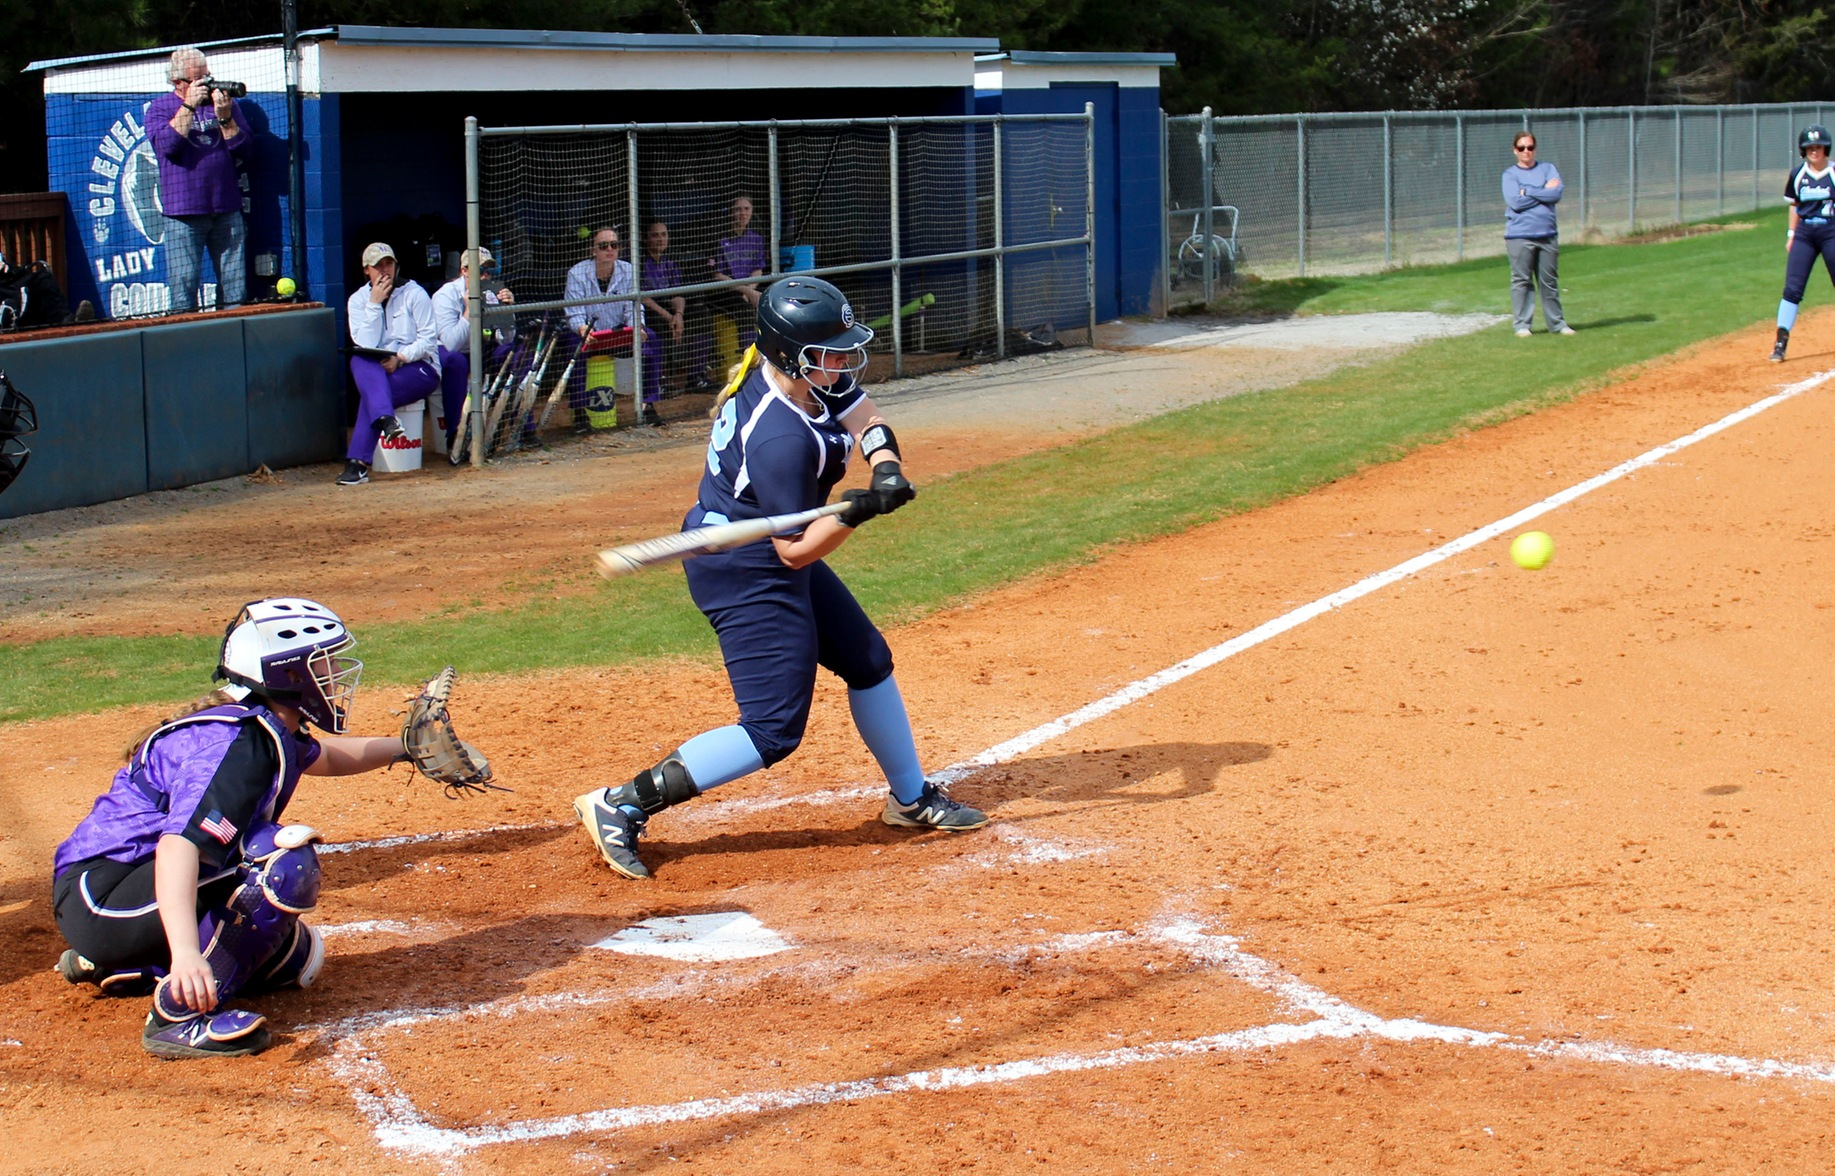 PREVIEW: Softball Returns Home to Play Motlow State